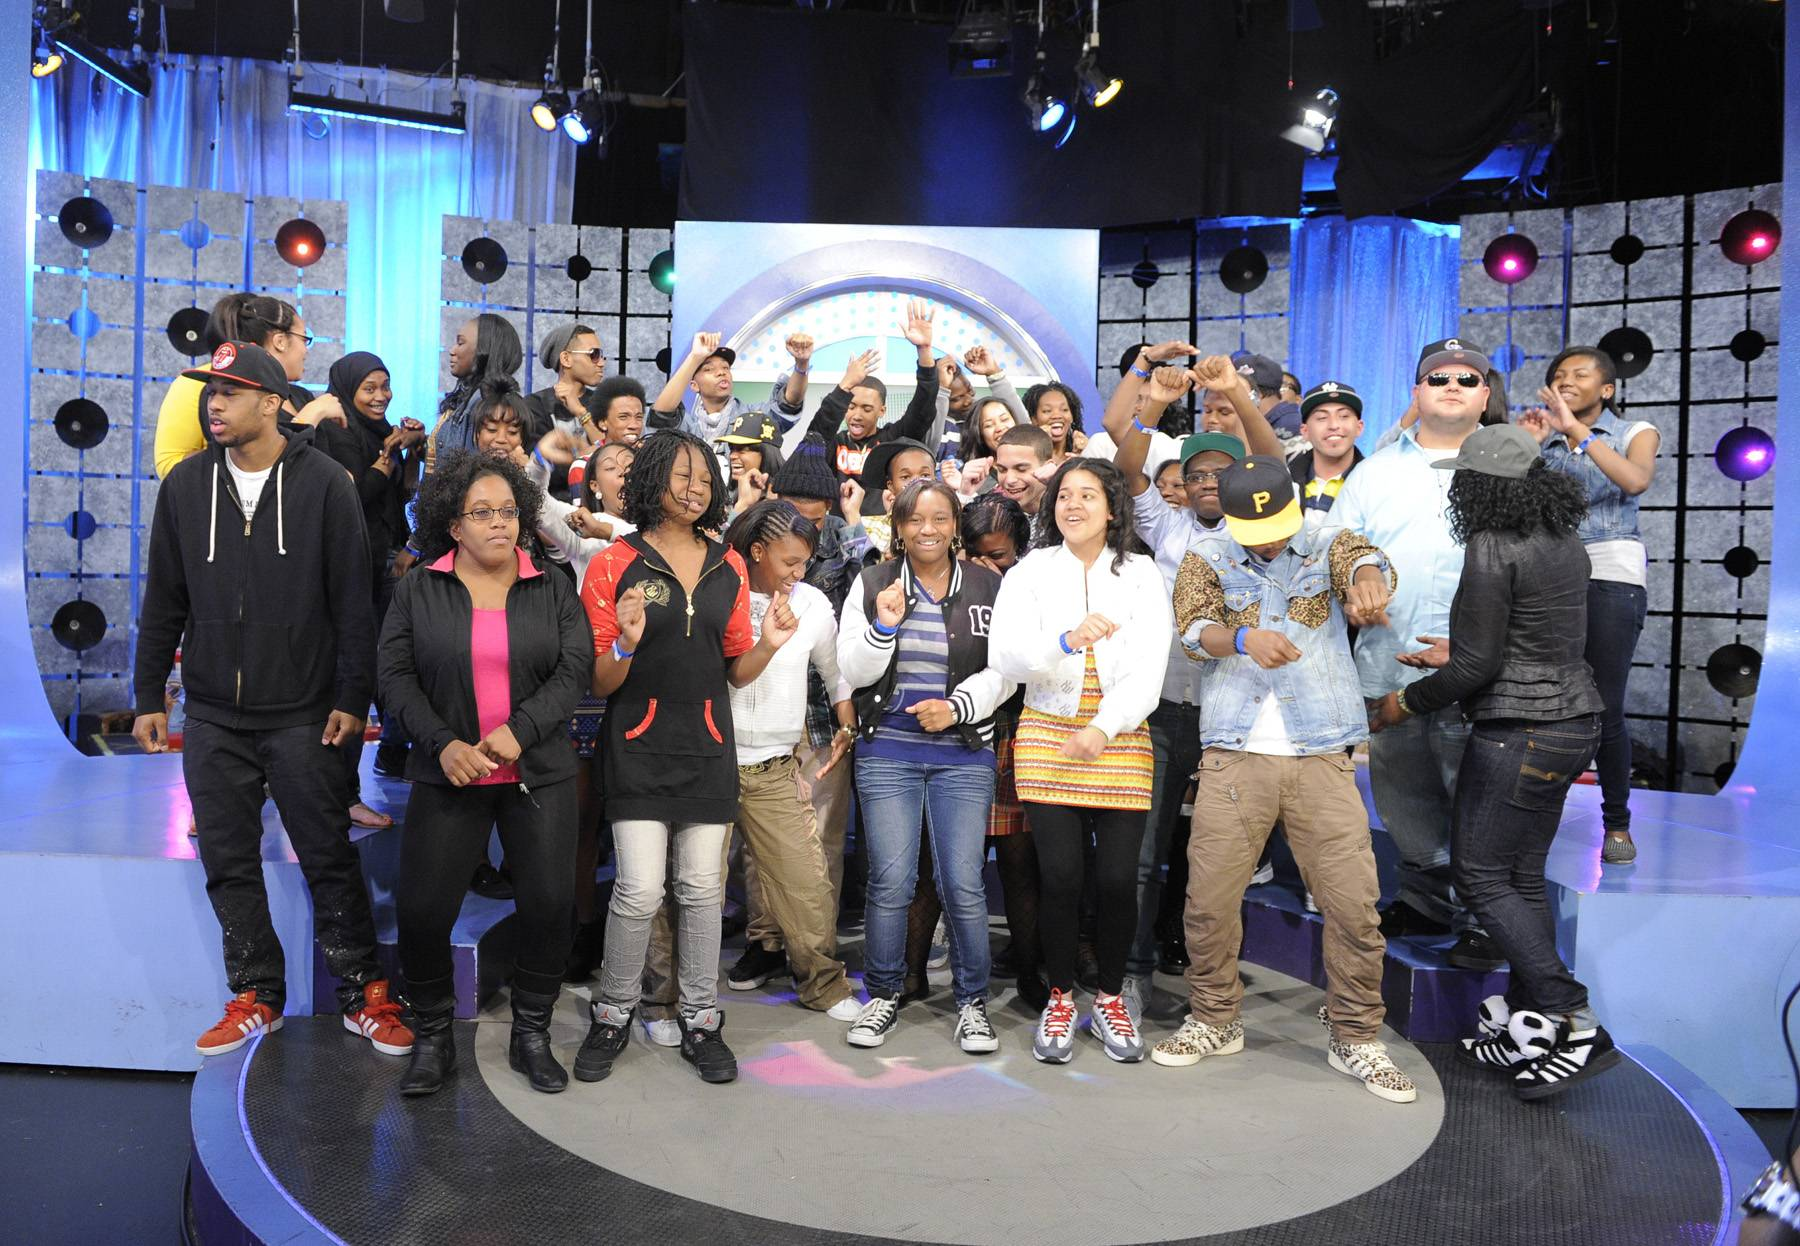 Get Live - The livest audience is always at 106 & Park, May 1, 2012. (Photo: John Ricard / BET)